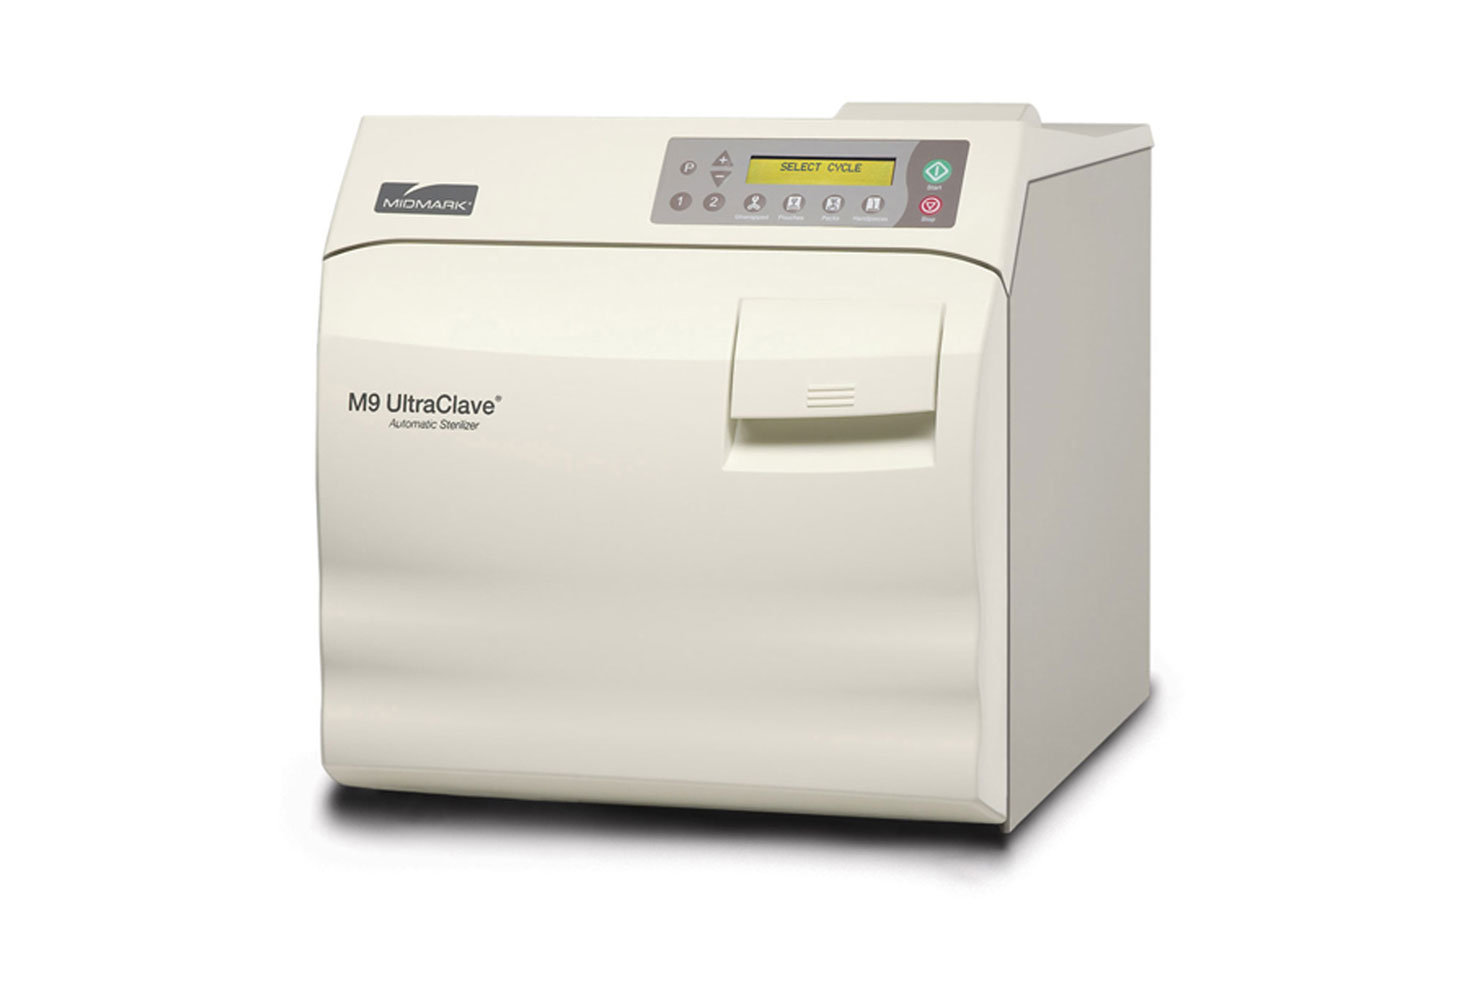 Midmark-M9-UltraClave-Automatic-Sterilizer